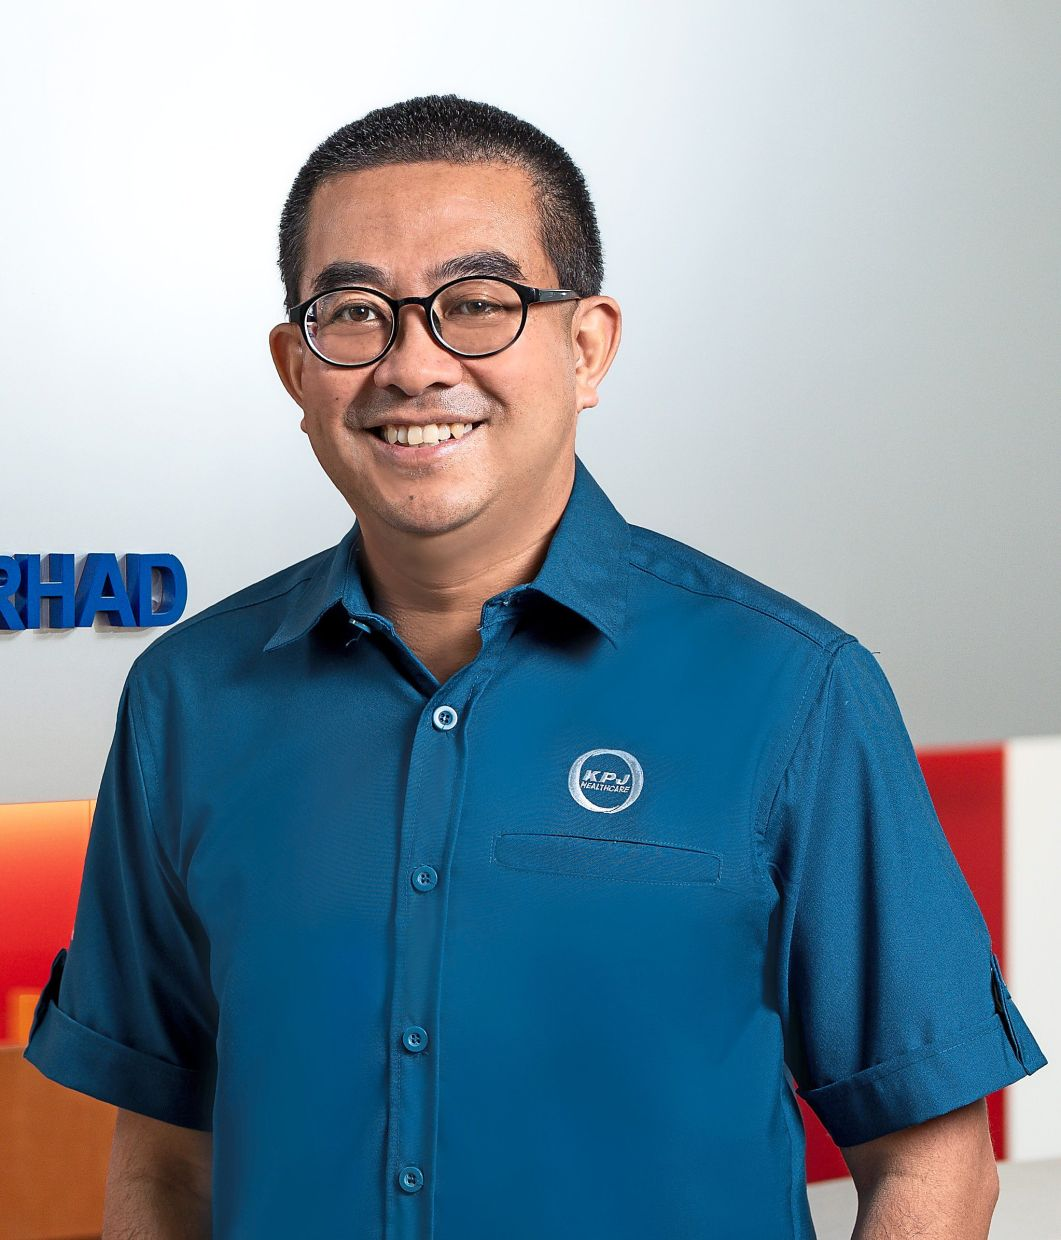 Ahmad Shahizam says there's a demand for medical tourism packages among Malaysians now.